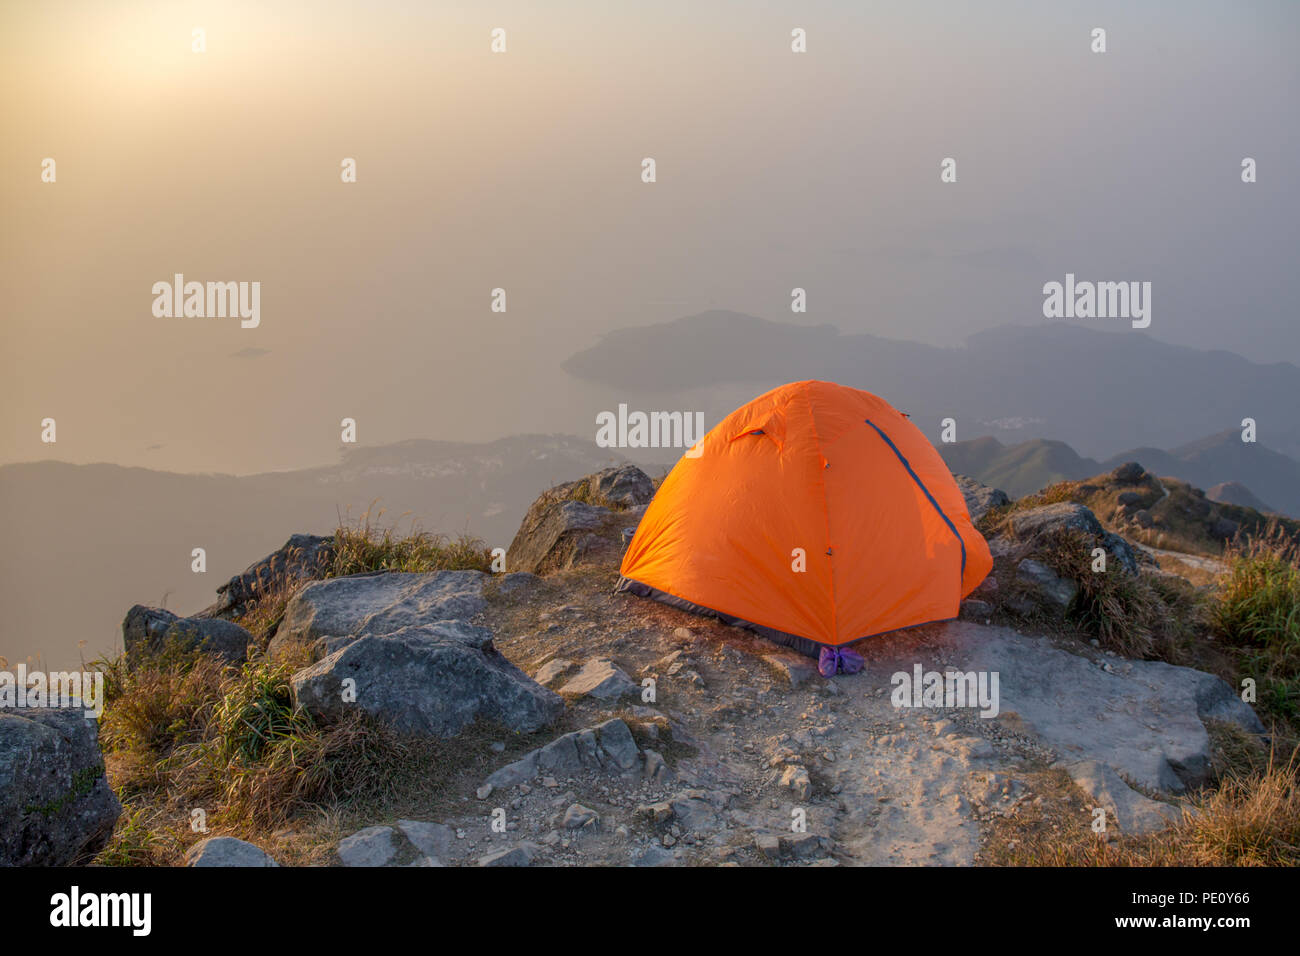 orange tent camping near cliff isolated on lantau peak, Hong Kong in sunrise and fog with copy space - Stock Image